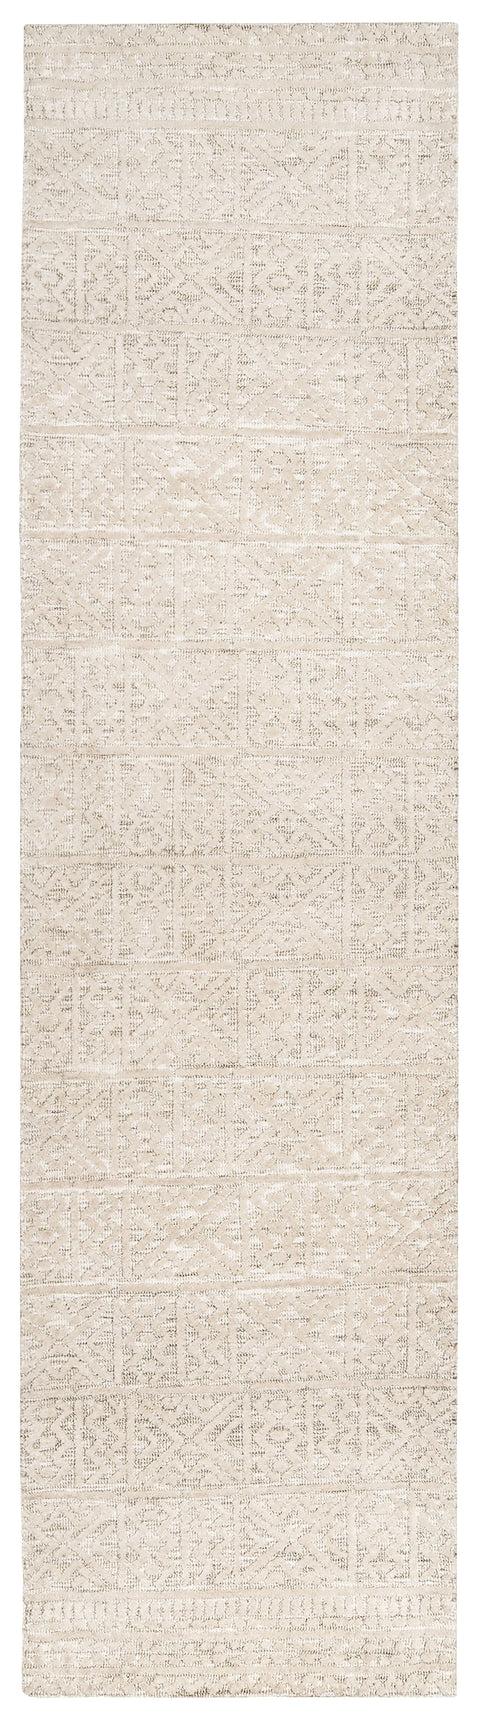 Neewa Beige and Ivory Tribal Transitional Runner Rug